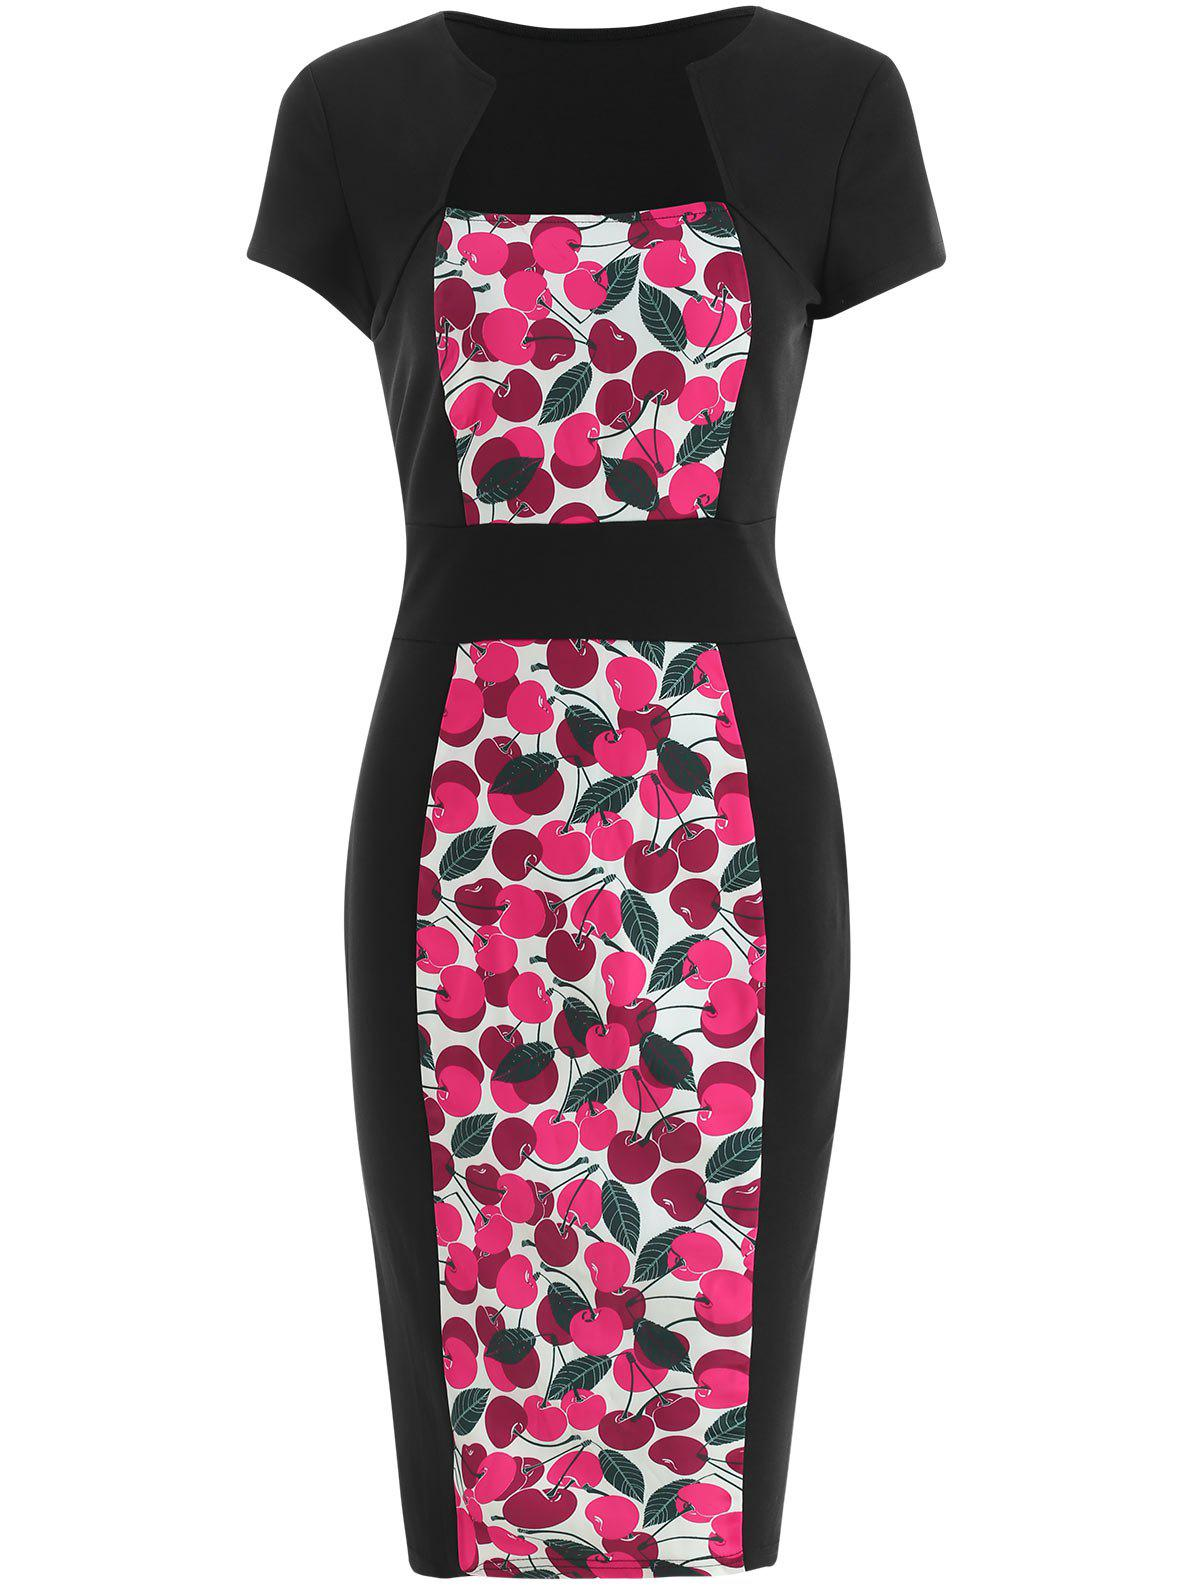 New Cherry Print Cap Sleeve Bodycon Dress